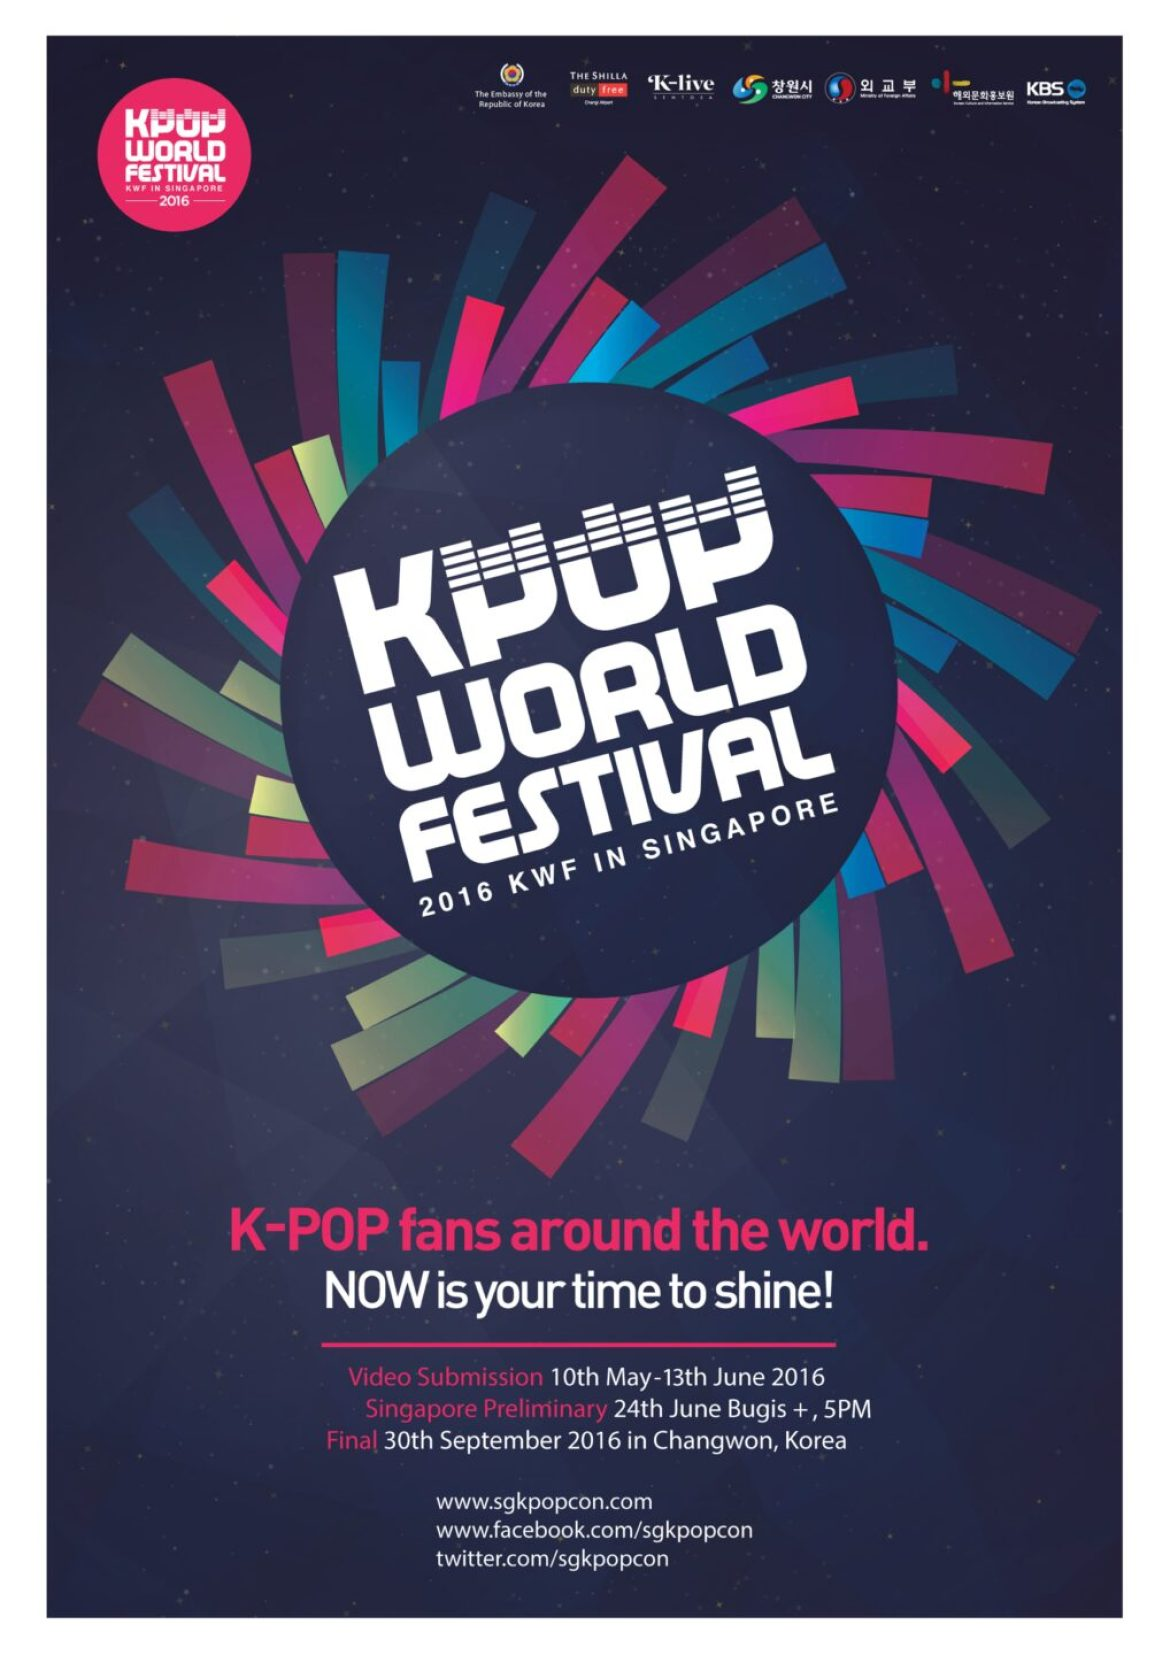 KPOP WORLD FESTIVAL POSTER